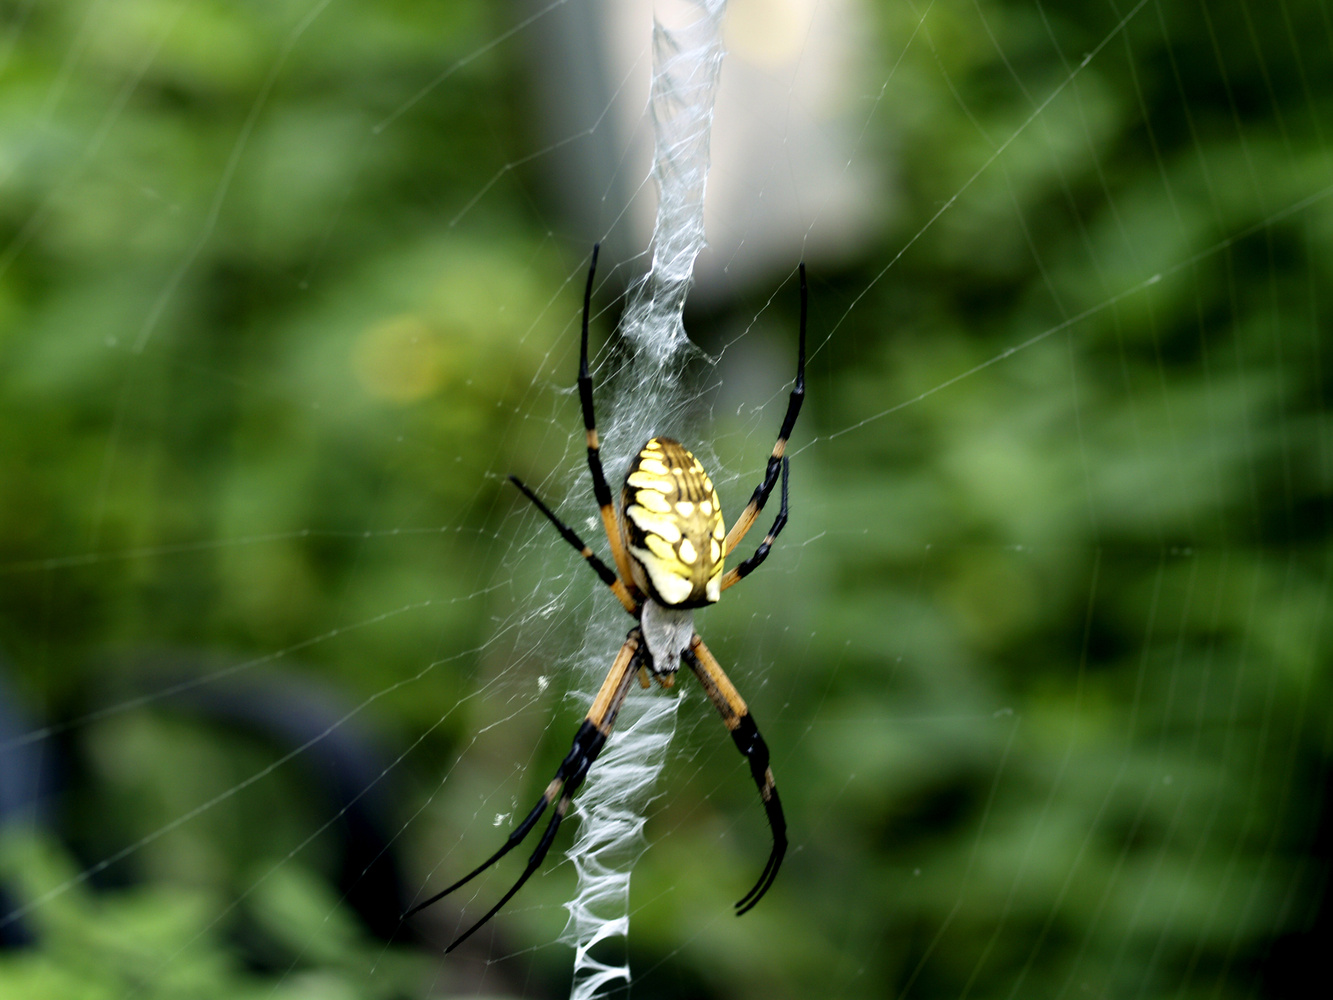 Black and Yellow Spider by Archie Plump